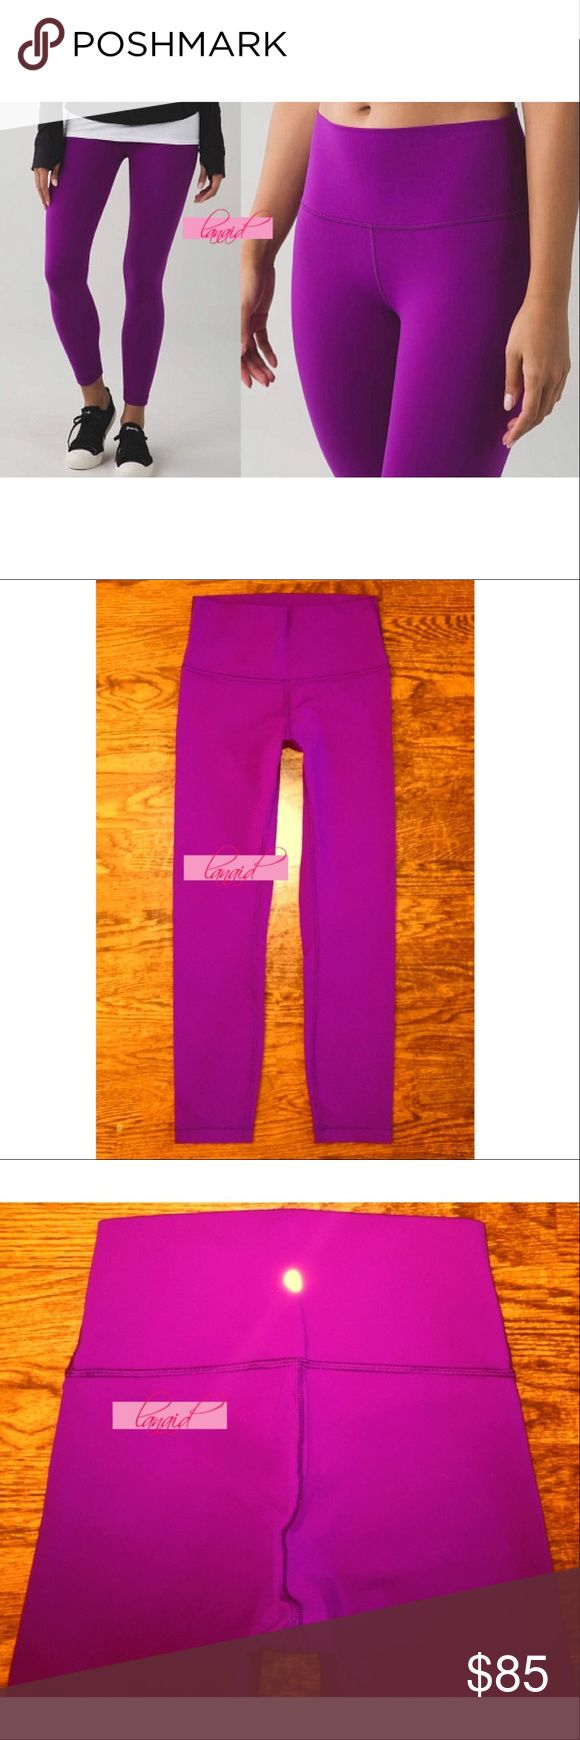 "Lululemon High Times Tender Violet Rise Waist Pant 📡PRICE IS FIRM AND NON-NEGOTIABLE. NO OFFERS. LOWBALLERS WILL BE BLOCKED. NO TRADES.📡 Lululemon ""High Times"" yoga pants in Tender Violet, size 6. High-waisted. Hidden pocket tucked into the waistband. Made of cottony-soft Full-On Luon® fabric (a tight-knit, more compressive version of Luon®). 7/8 length. Four-way stretch, sweat-wicking, and breathable. lululemon athletica Pants Skinny"